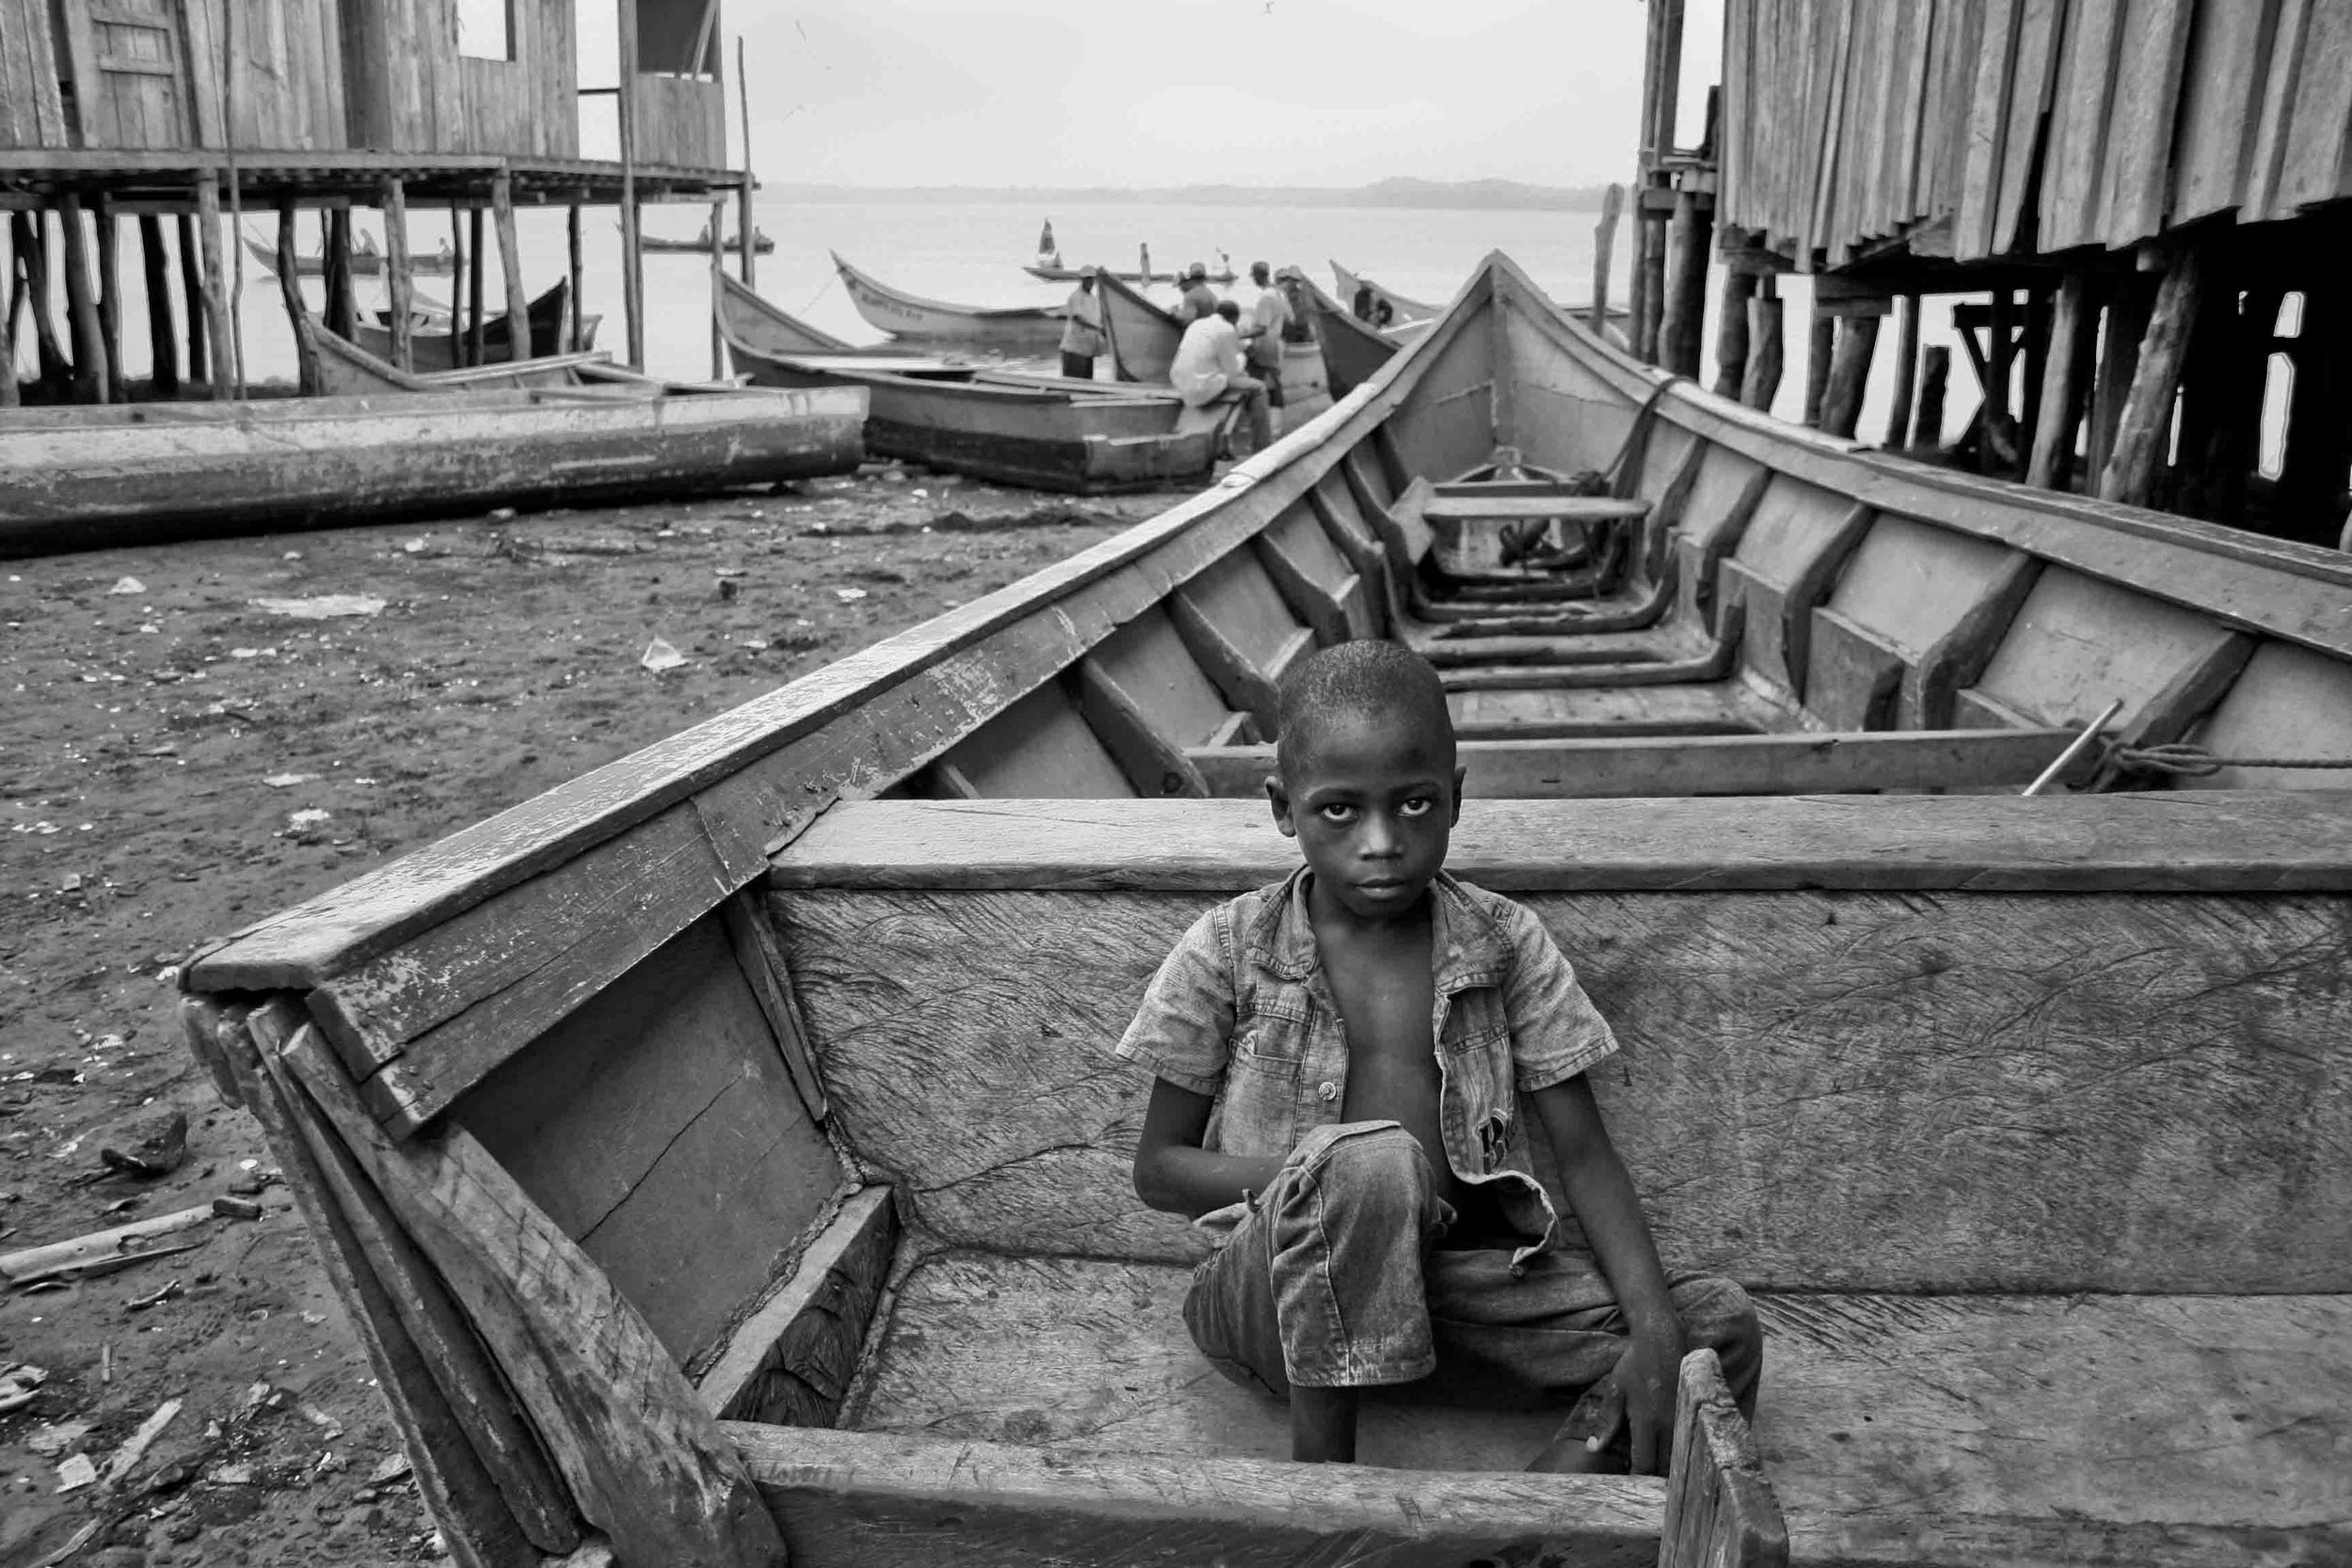 A child sitting on a boat looks at the camera. Pampanal de Bolívar, Ecuador. 2010.